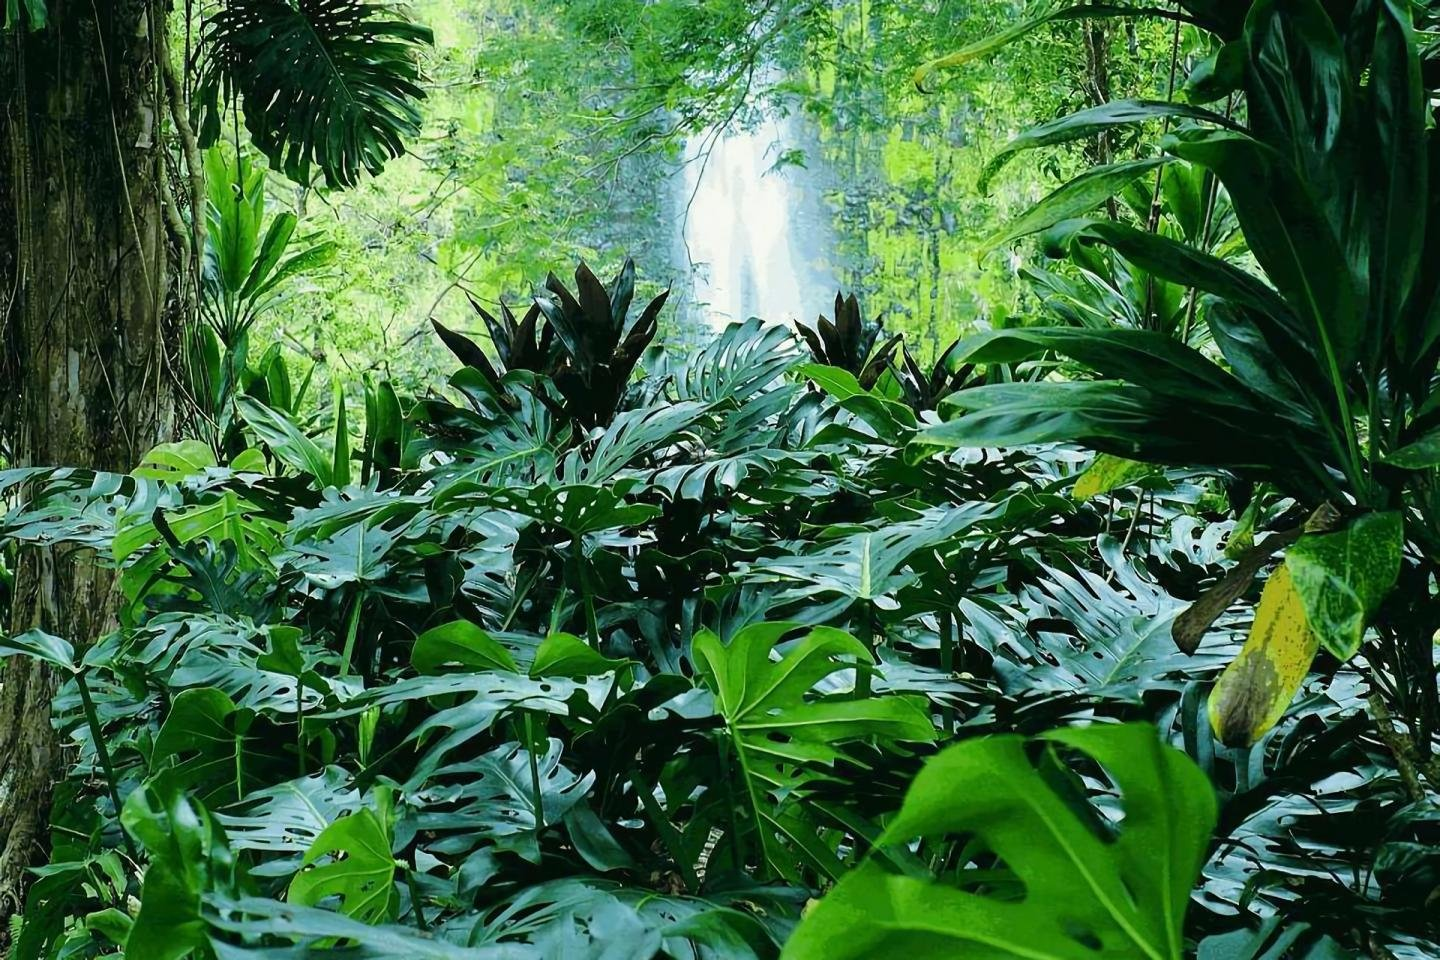 green plants, jungle ppt background #4996